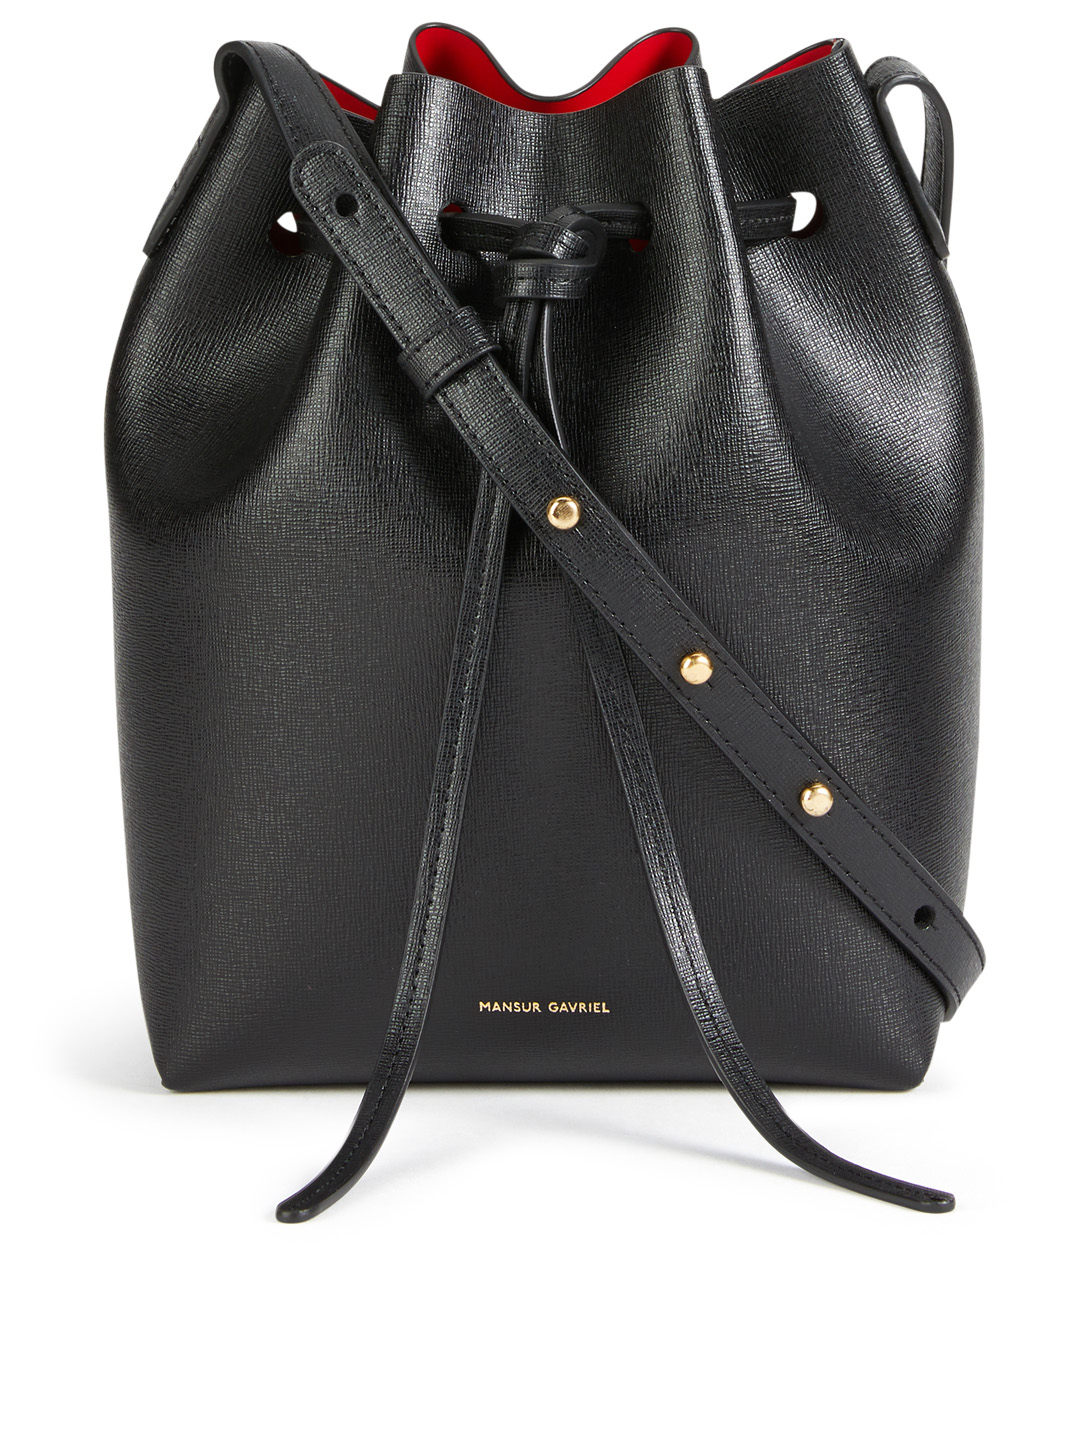 aab2d0bf540 MANSUR GAVRIEL Mini Saffiano Leather Bucket Bag | Holt Renfrew